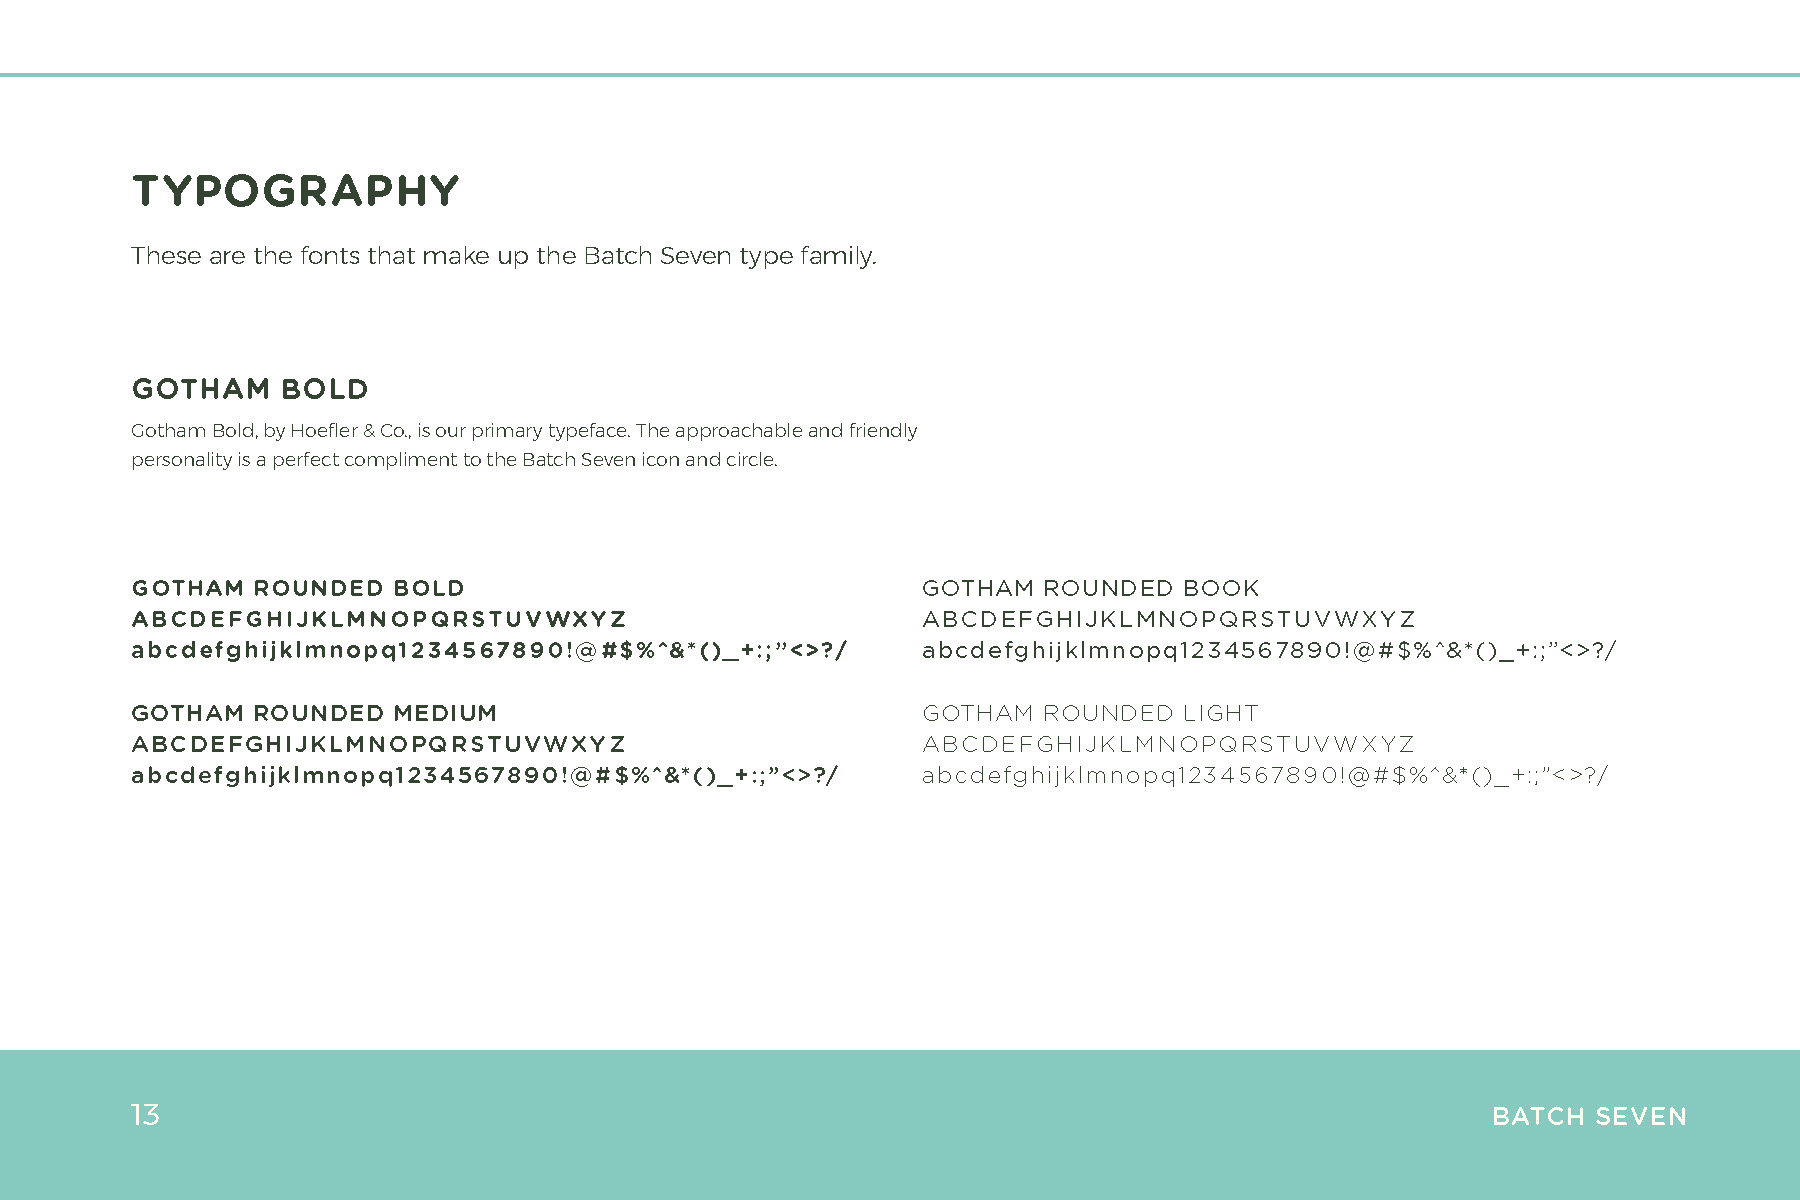 BatchSeven_Identity_Guidelines_Page_13.jpg